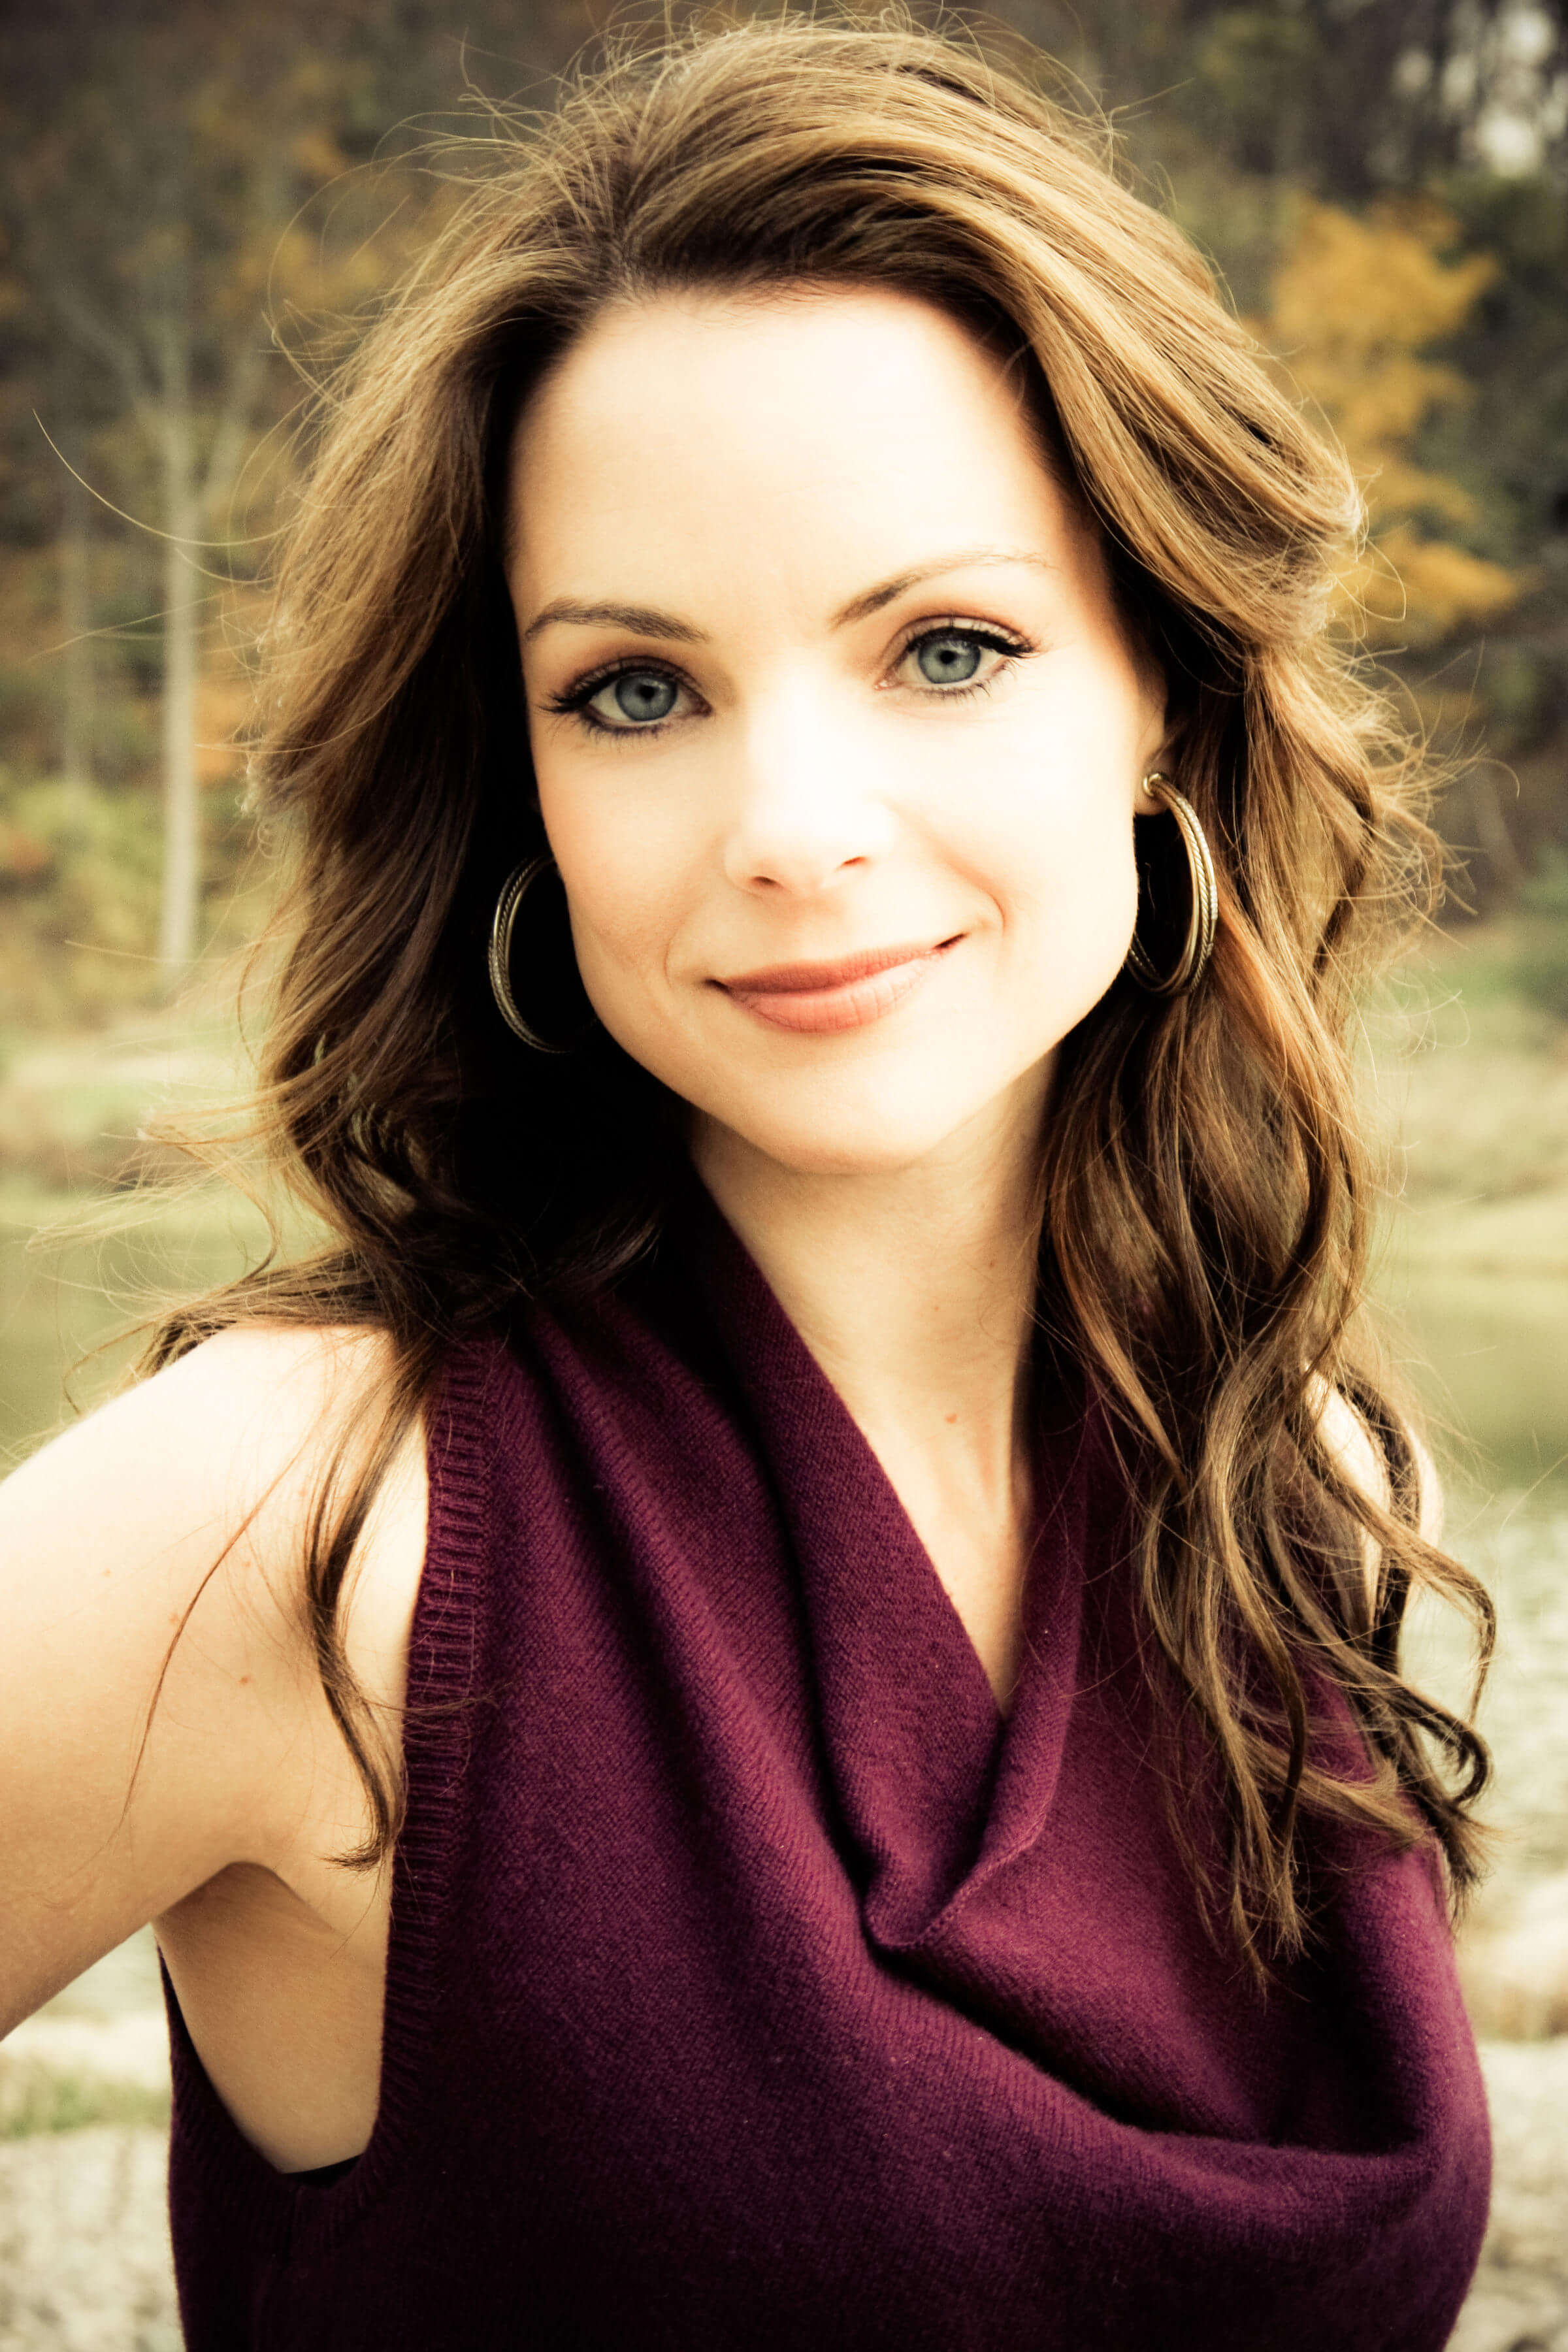 kimberly williams-paisley beautiful